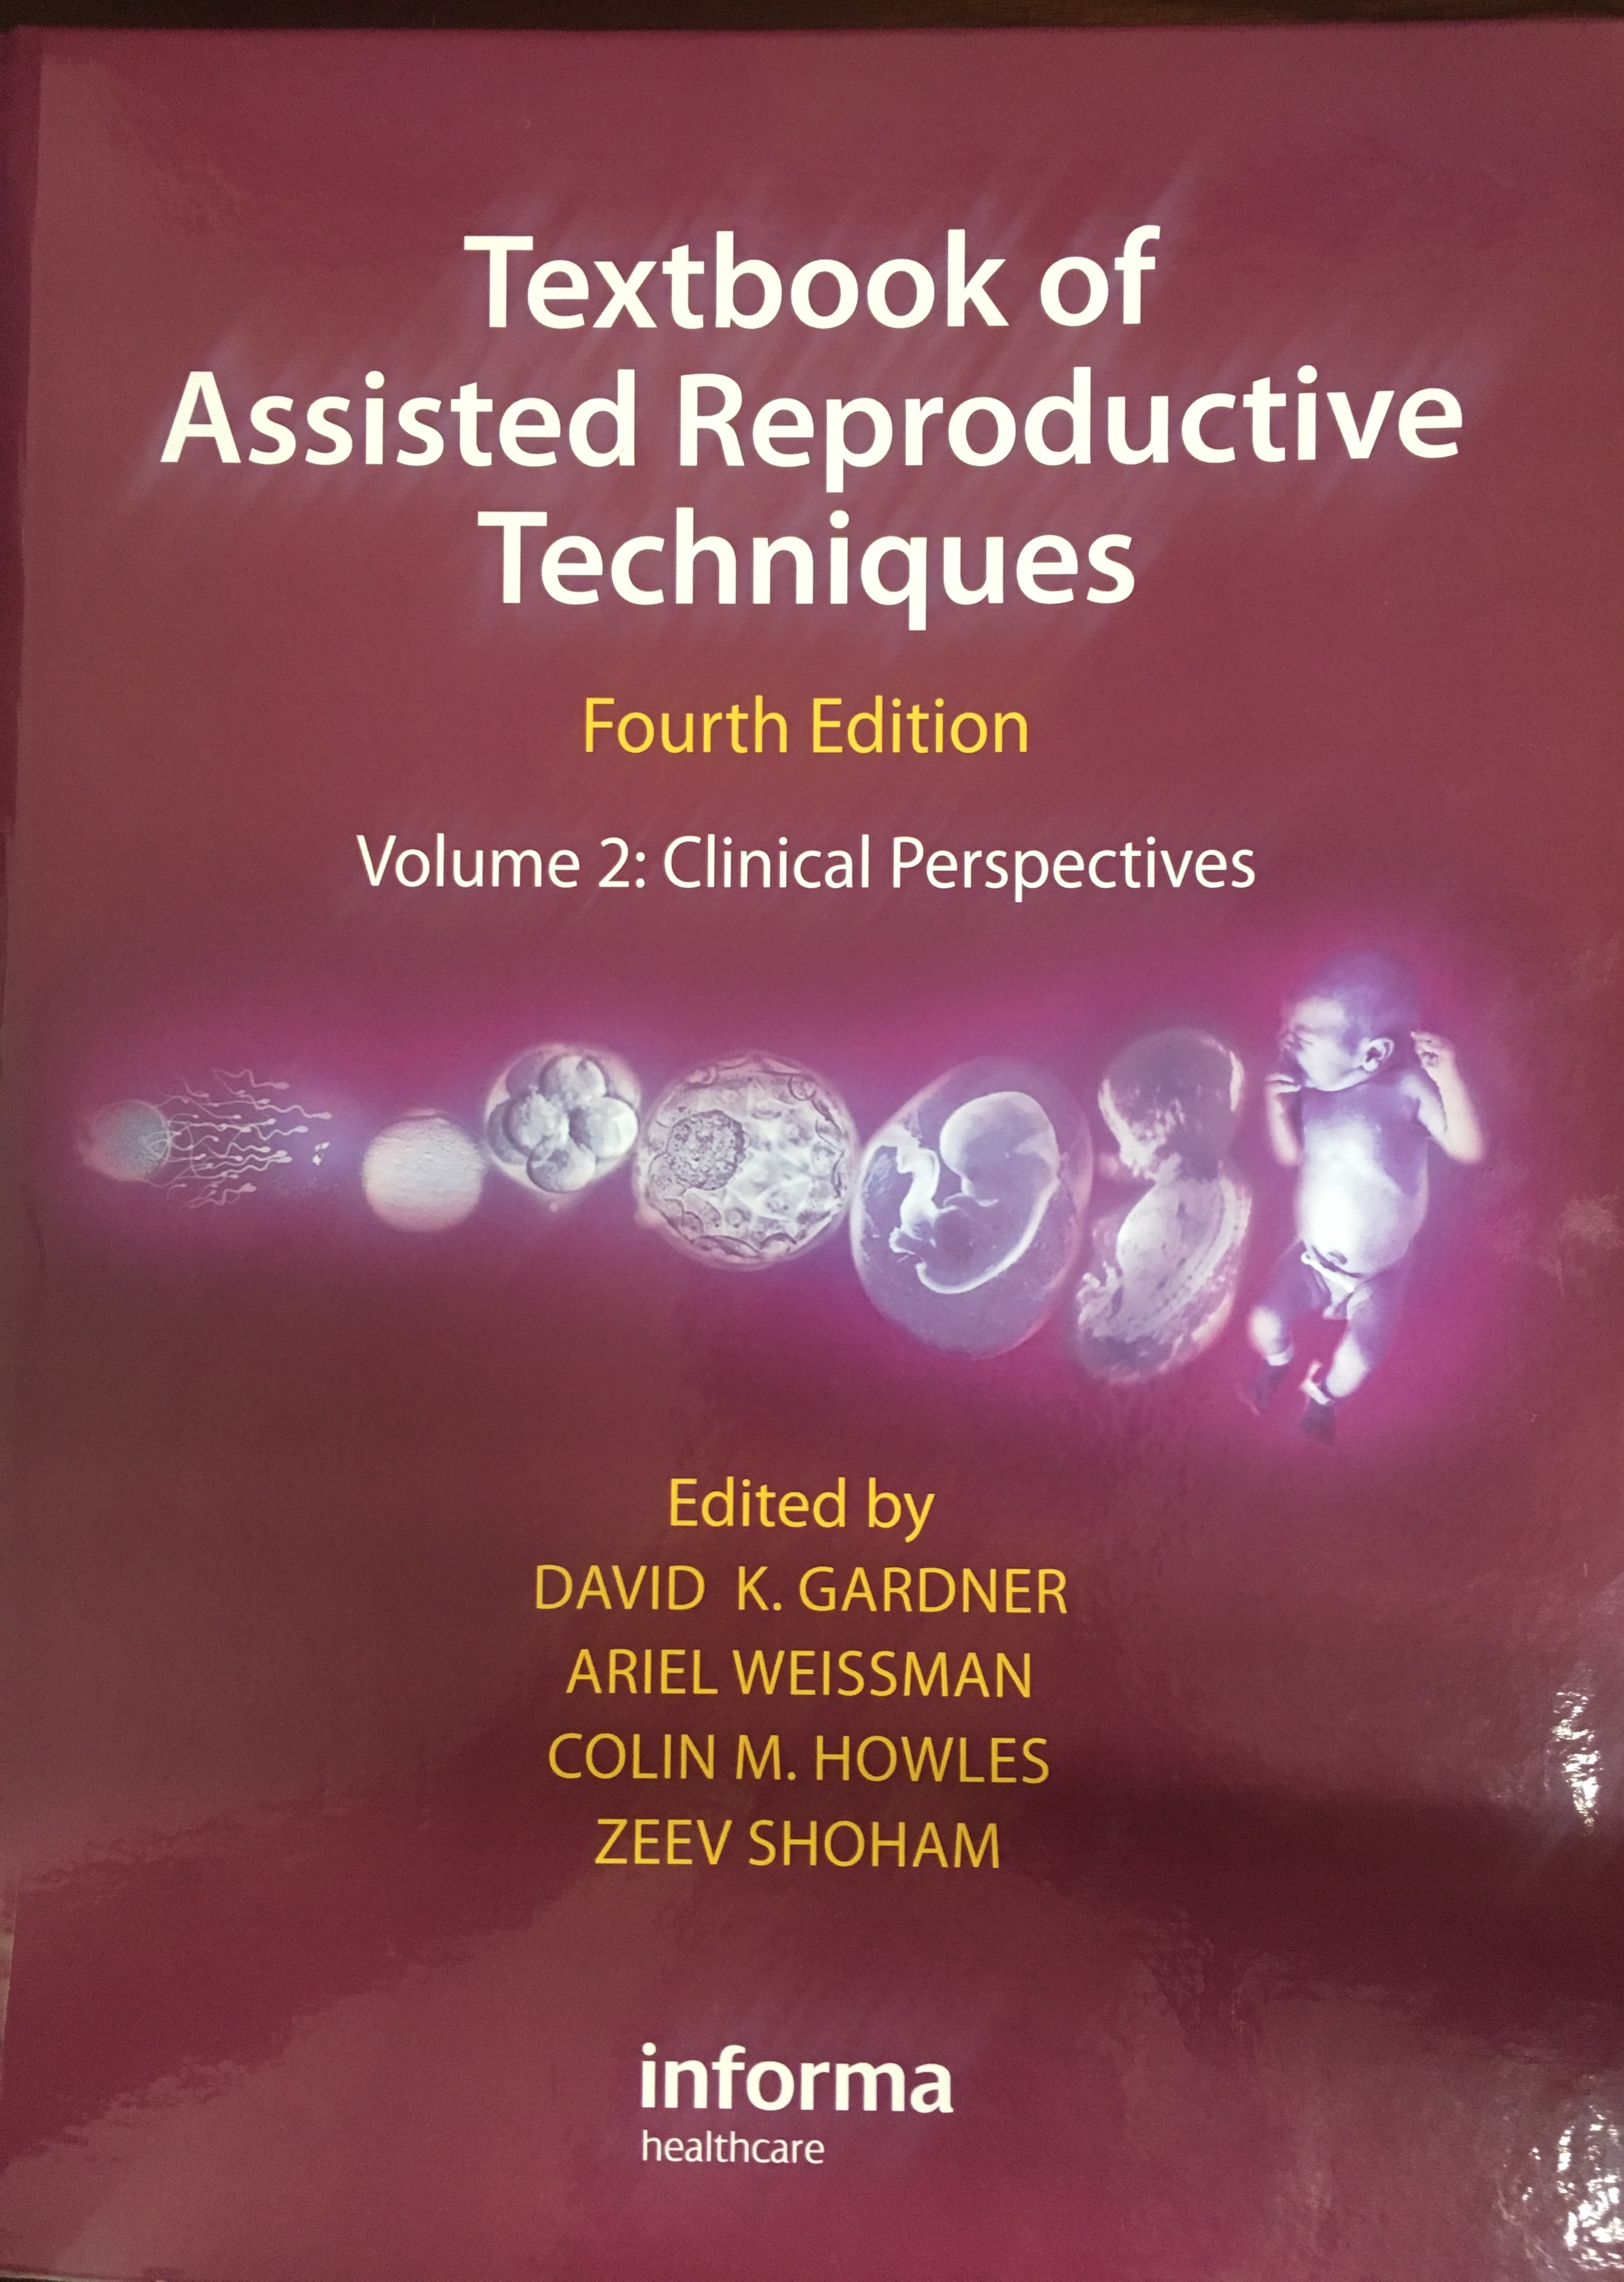 «Textbook of Assisted Reproductive Technologies:laboratory and clinical perspectives »